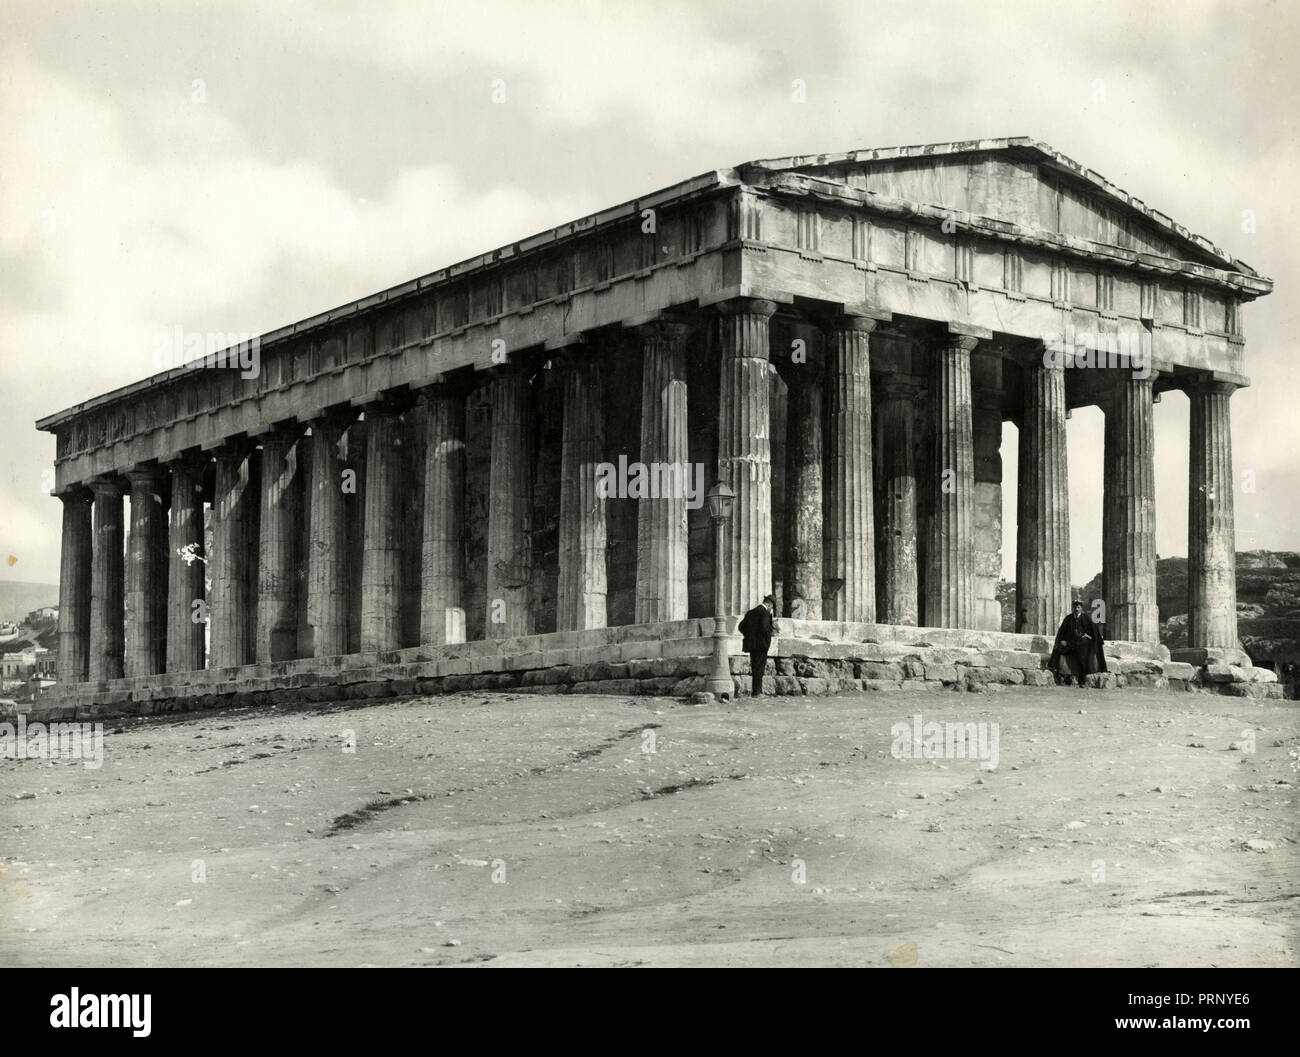 Temple of Theseus, Athens, Greece 1930s - Stock Image